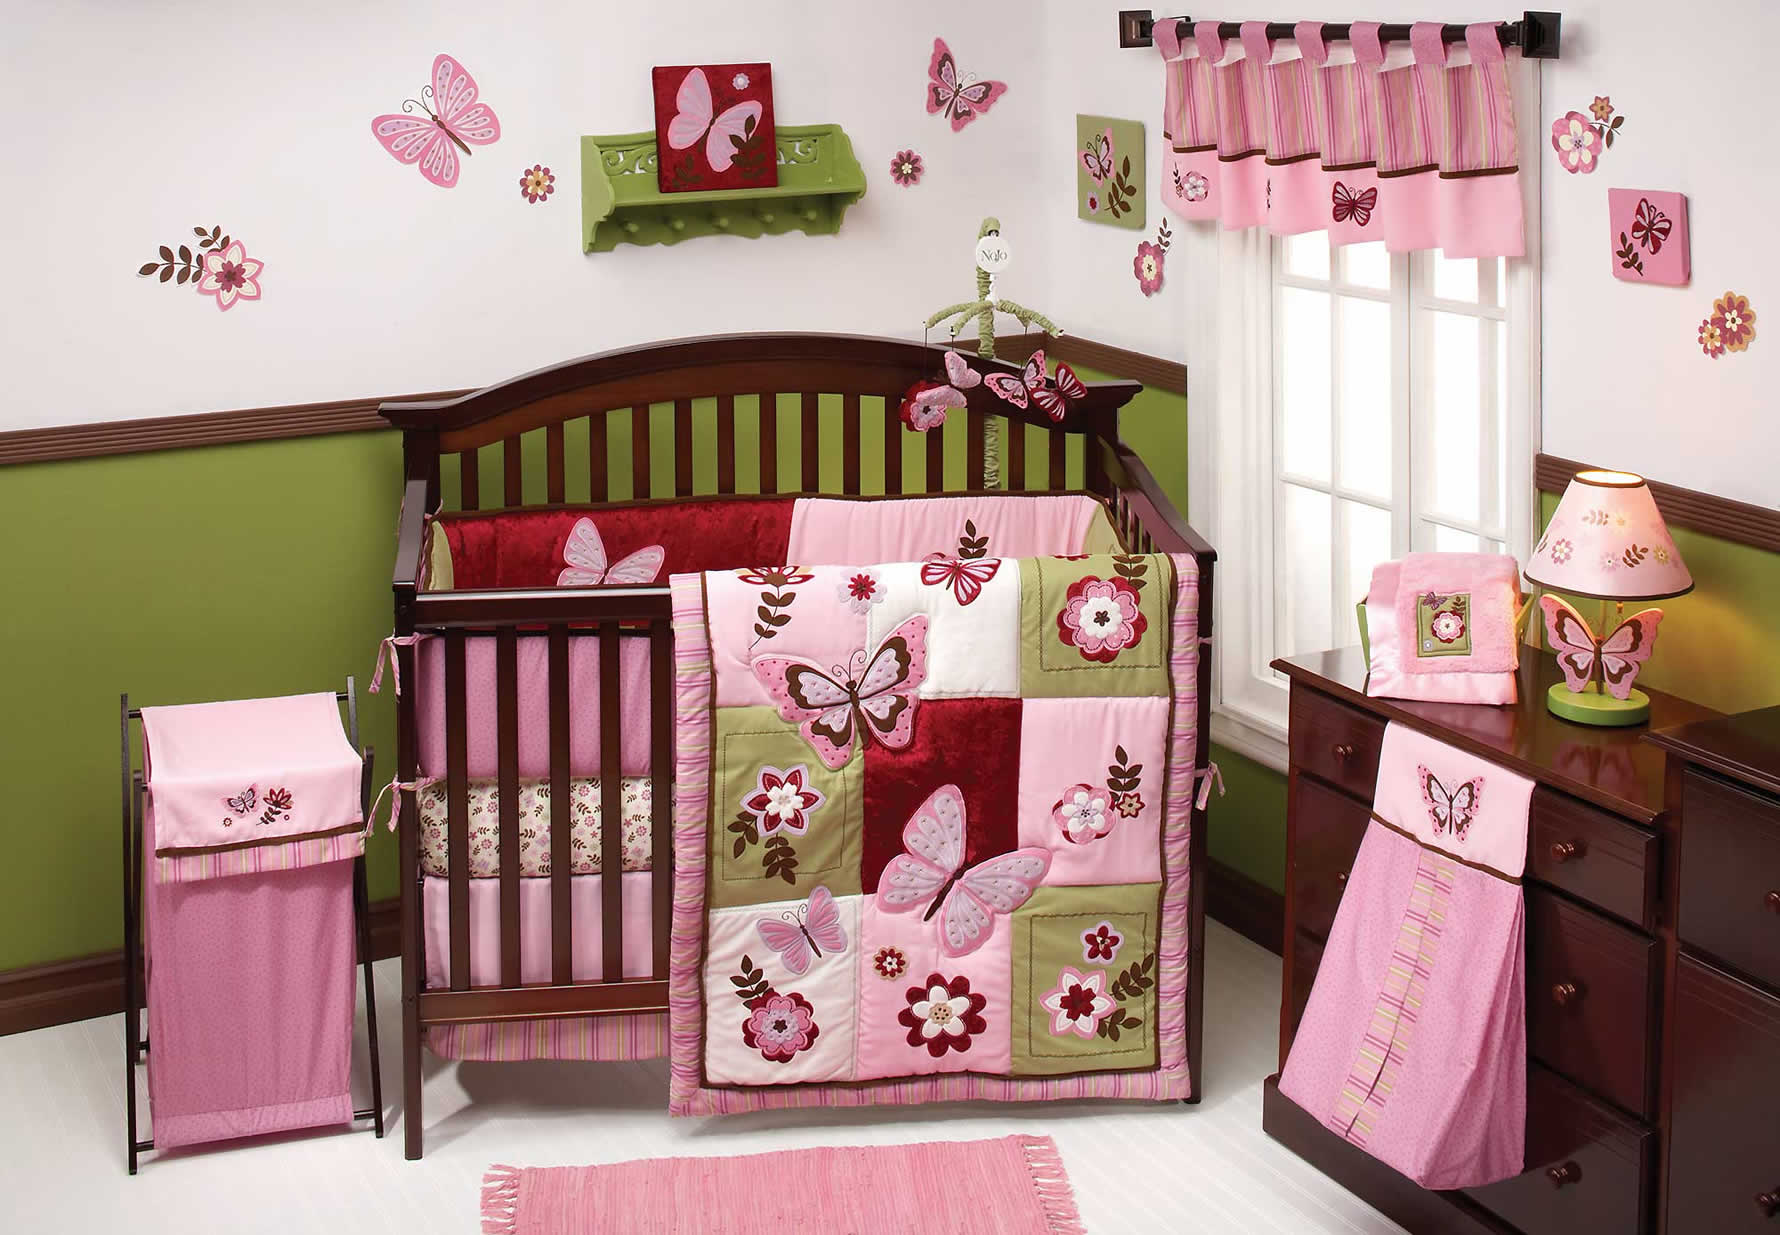 Tips to Choose the Right Baby and Kids\' Bedding - Hugs n Rugs